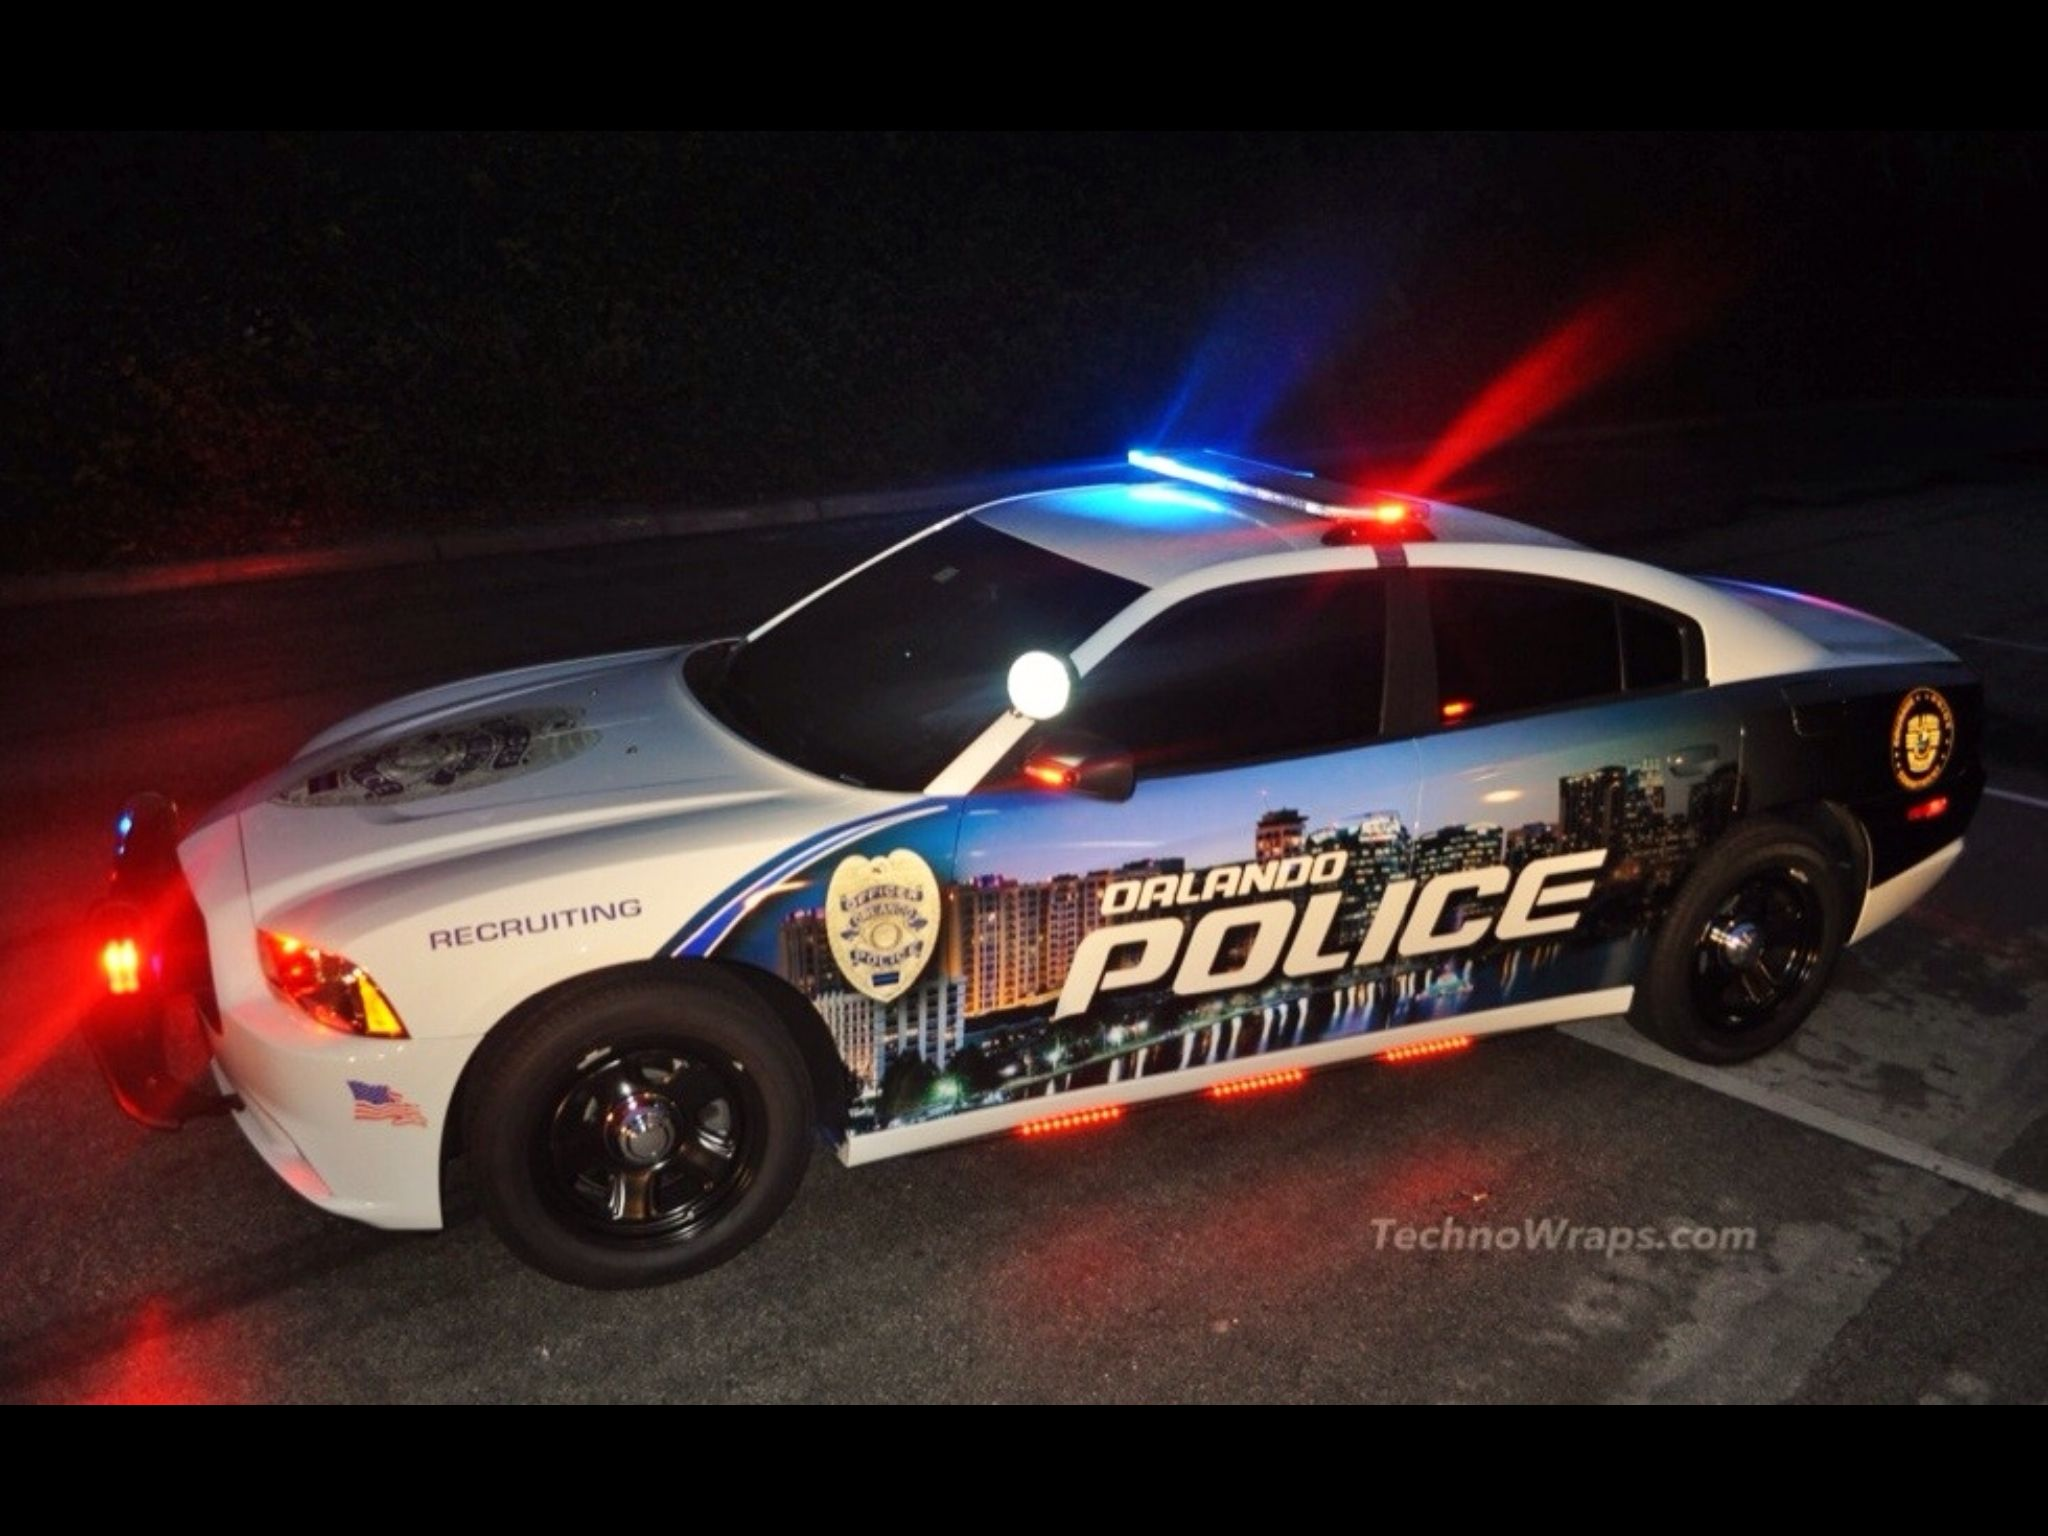 City of Orlando Police cars, Rescue vehicles, Police